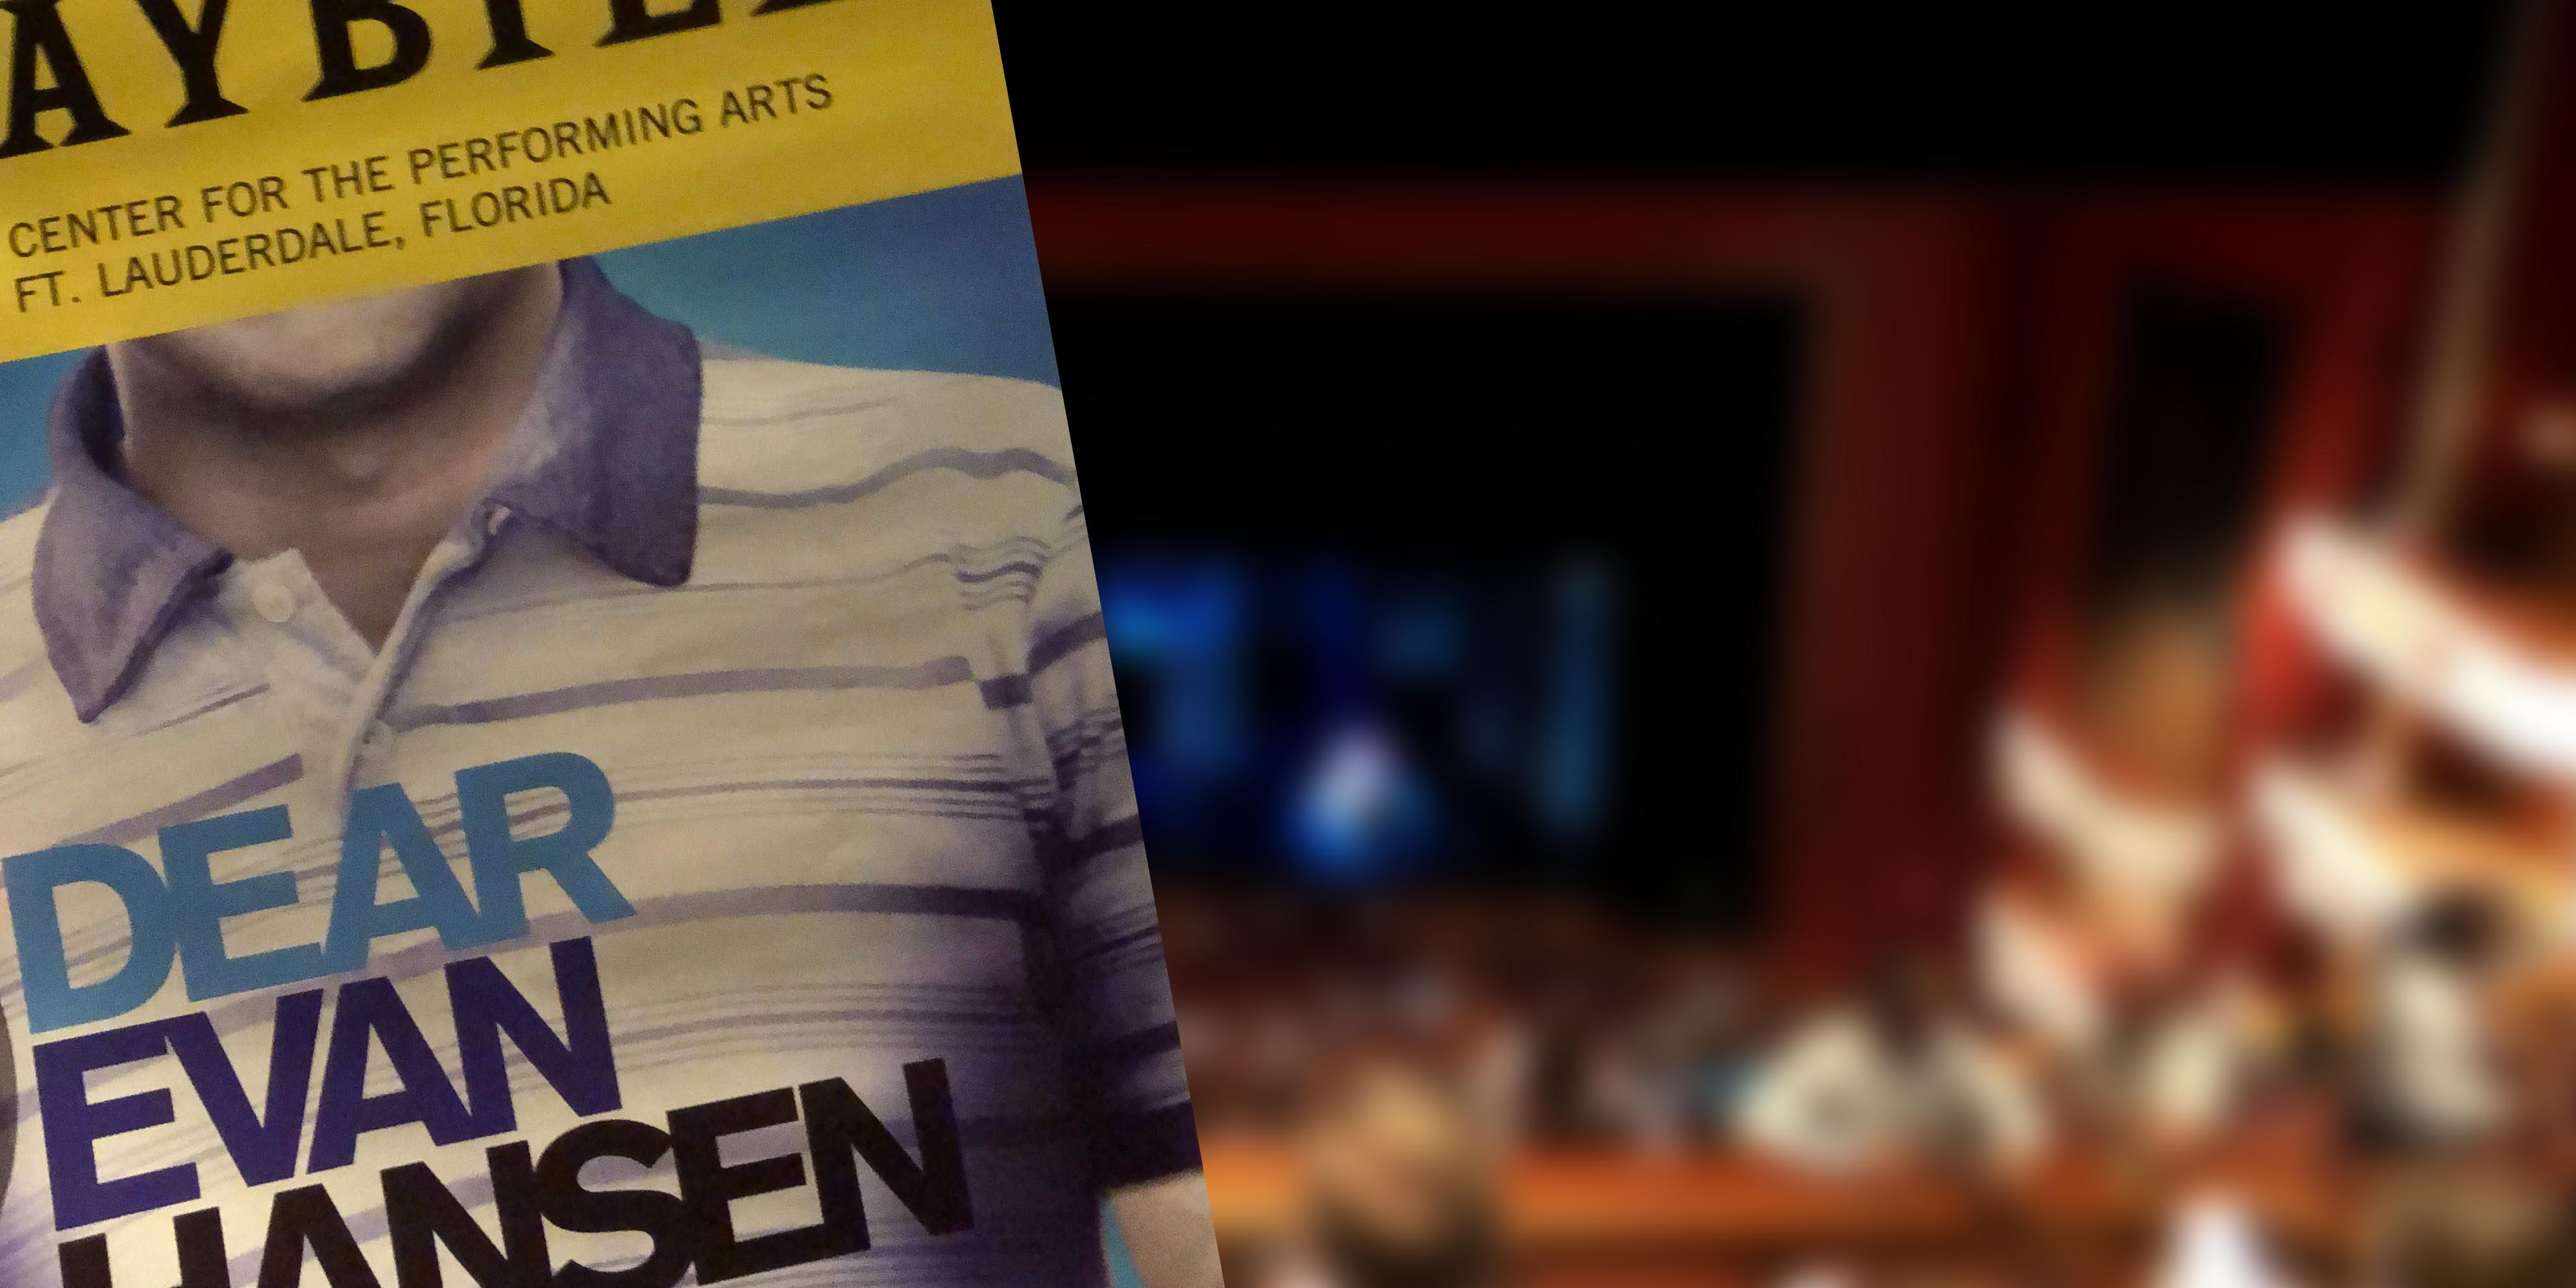 This image shows the PlayBill for the theater play, Dear Evan Hansen that Jesse Velez went to go see at the Broward Center for Performing Arts in Fort Lauderdale, Florida.